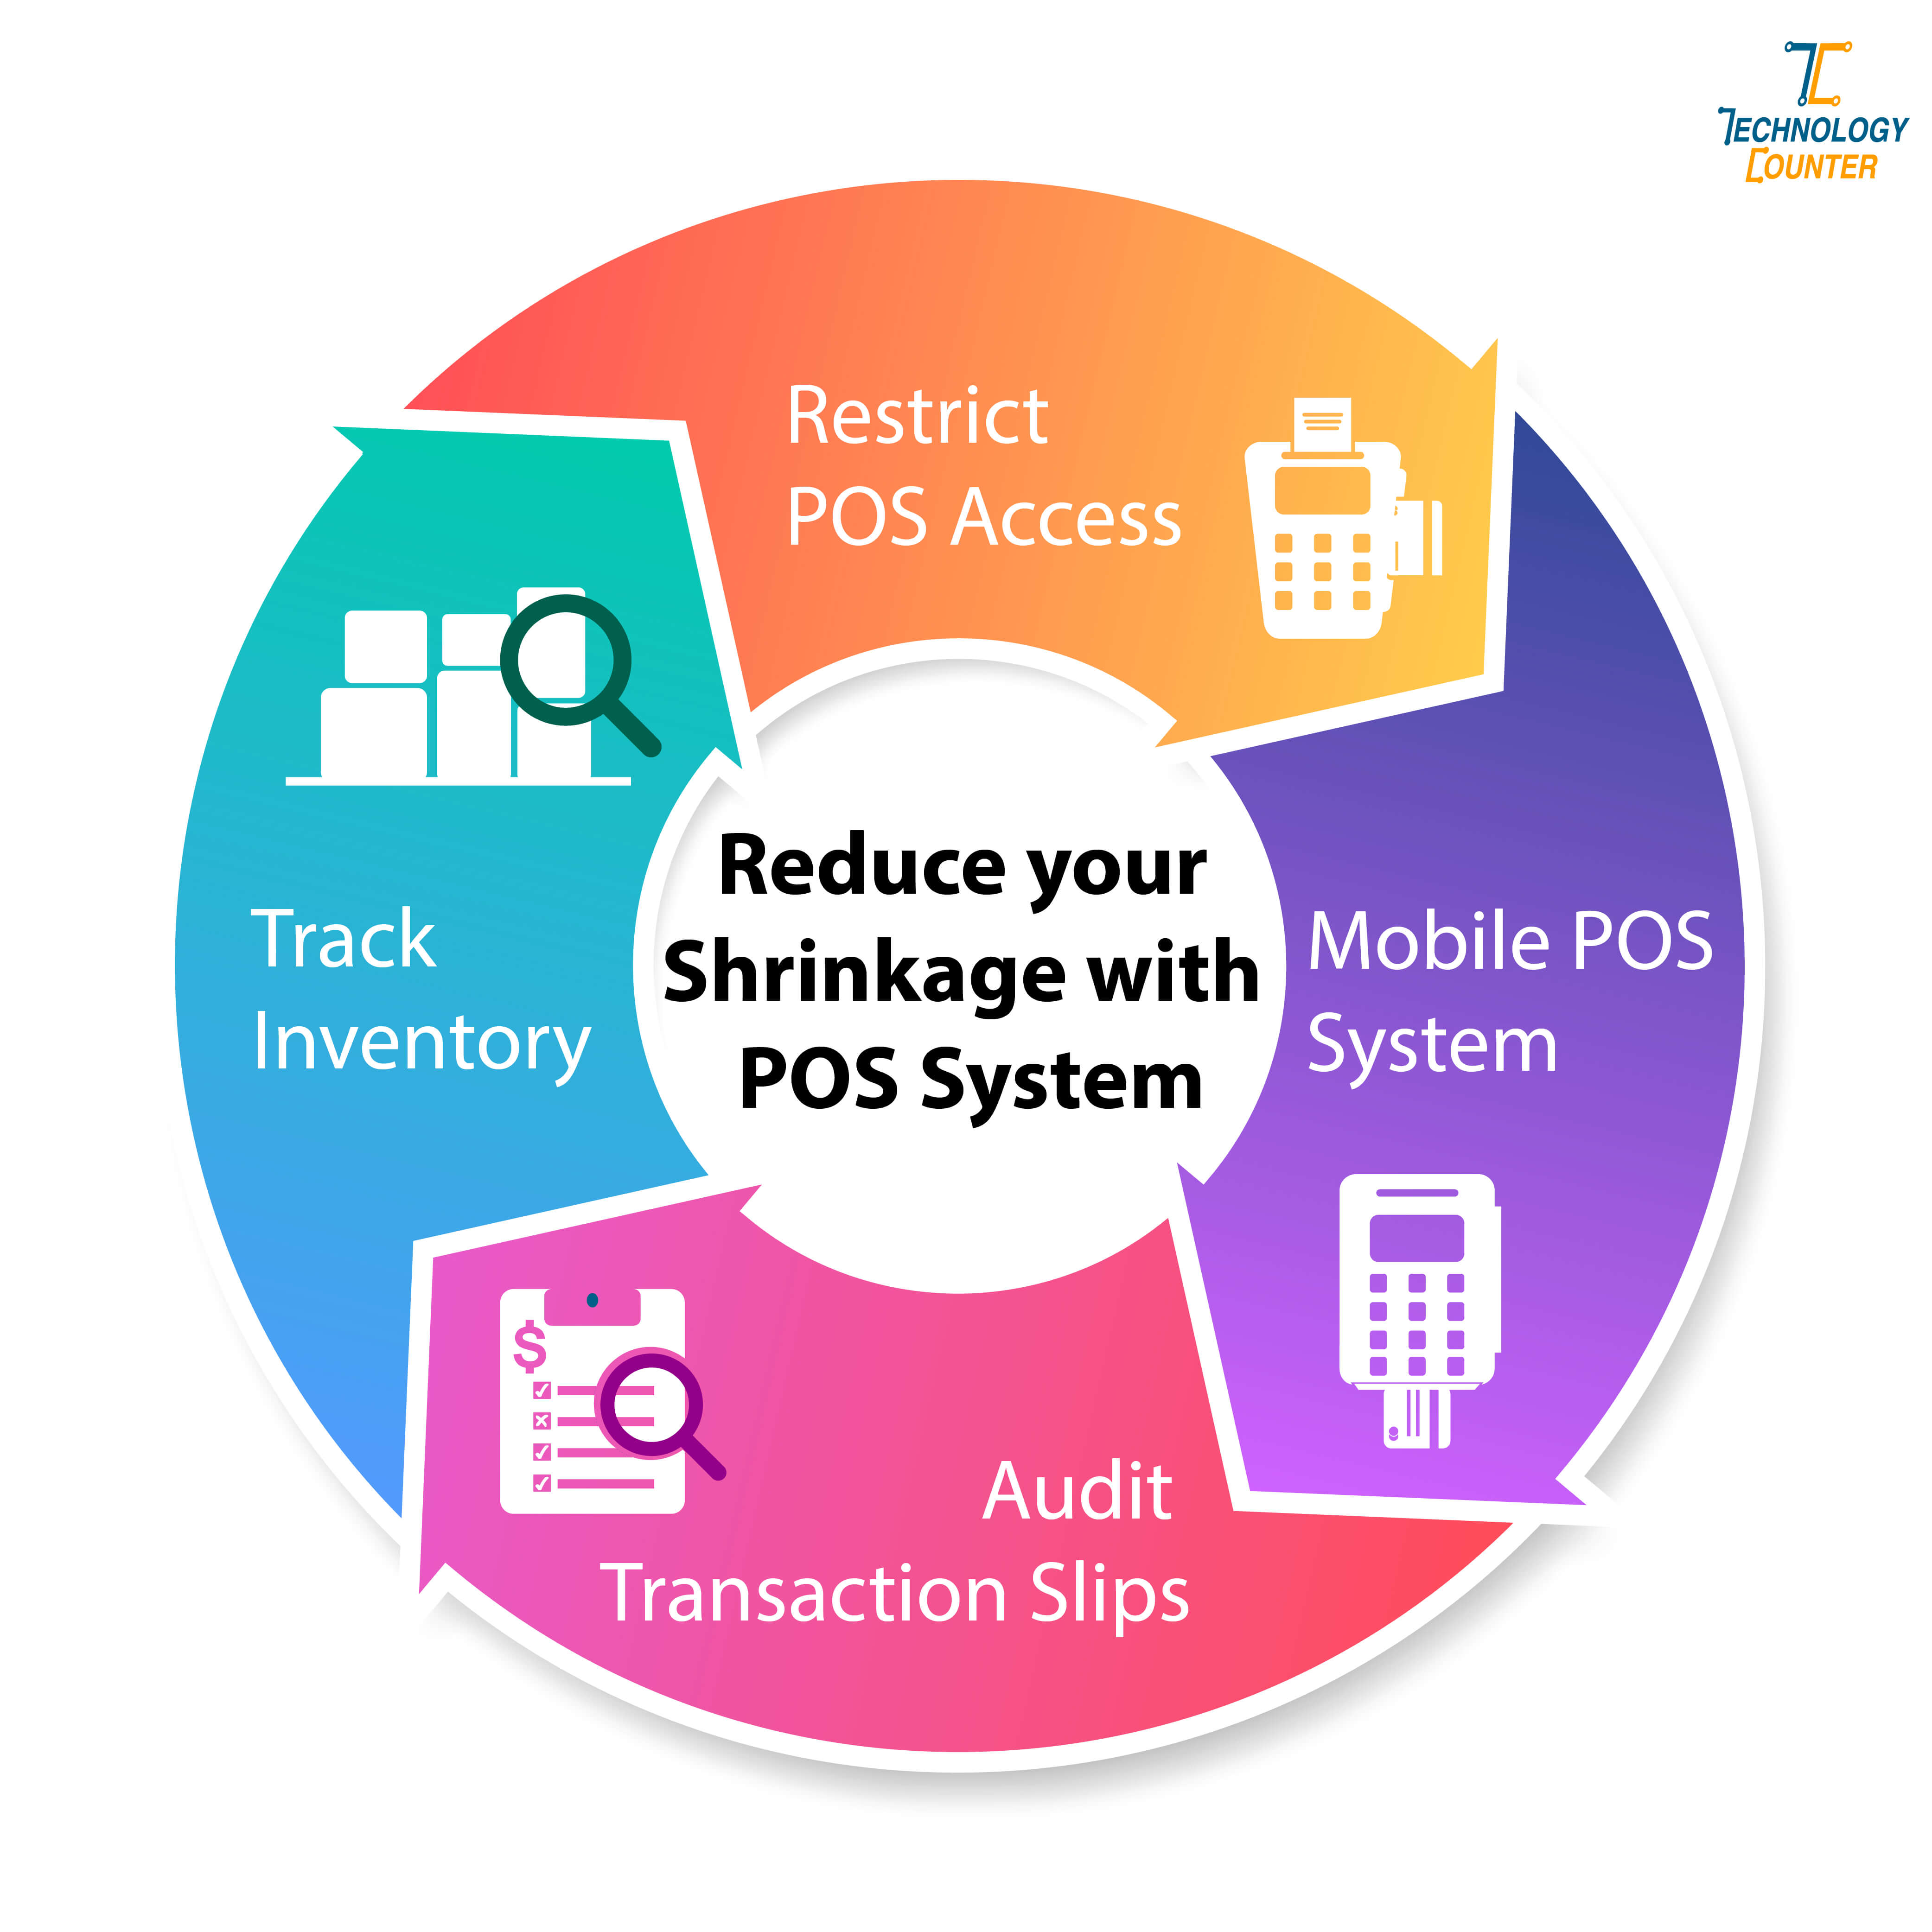 Reduce your Shrinkage with POS System